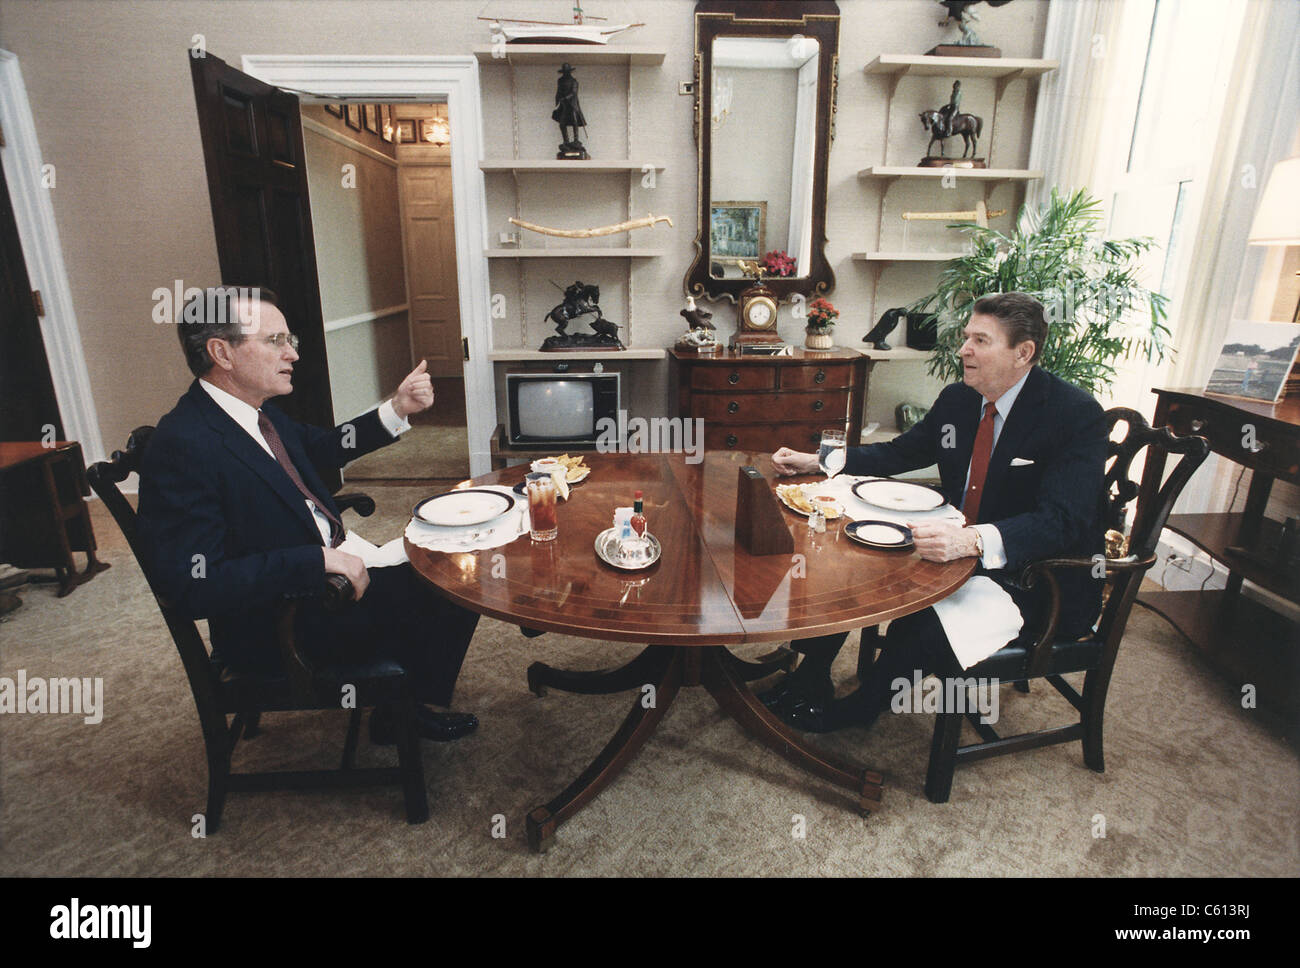 reagan oval office. President Reagan And Vice-President Bush Eating Lunch In The Oval Office Study.